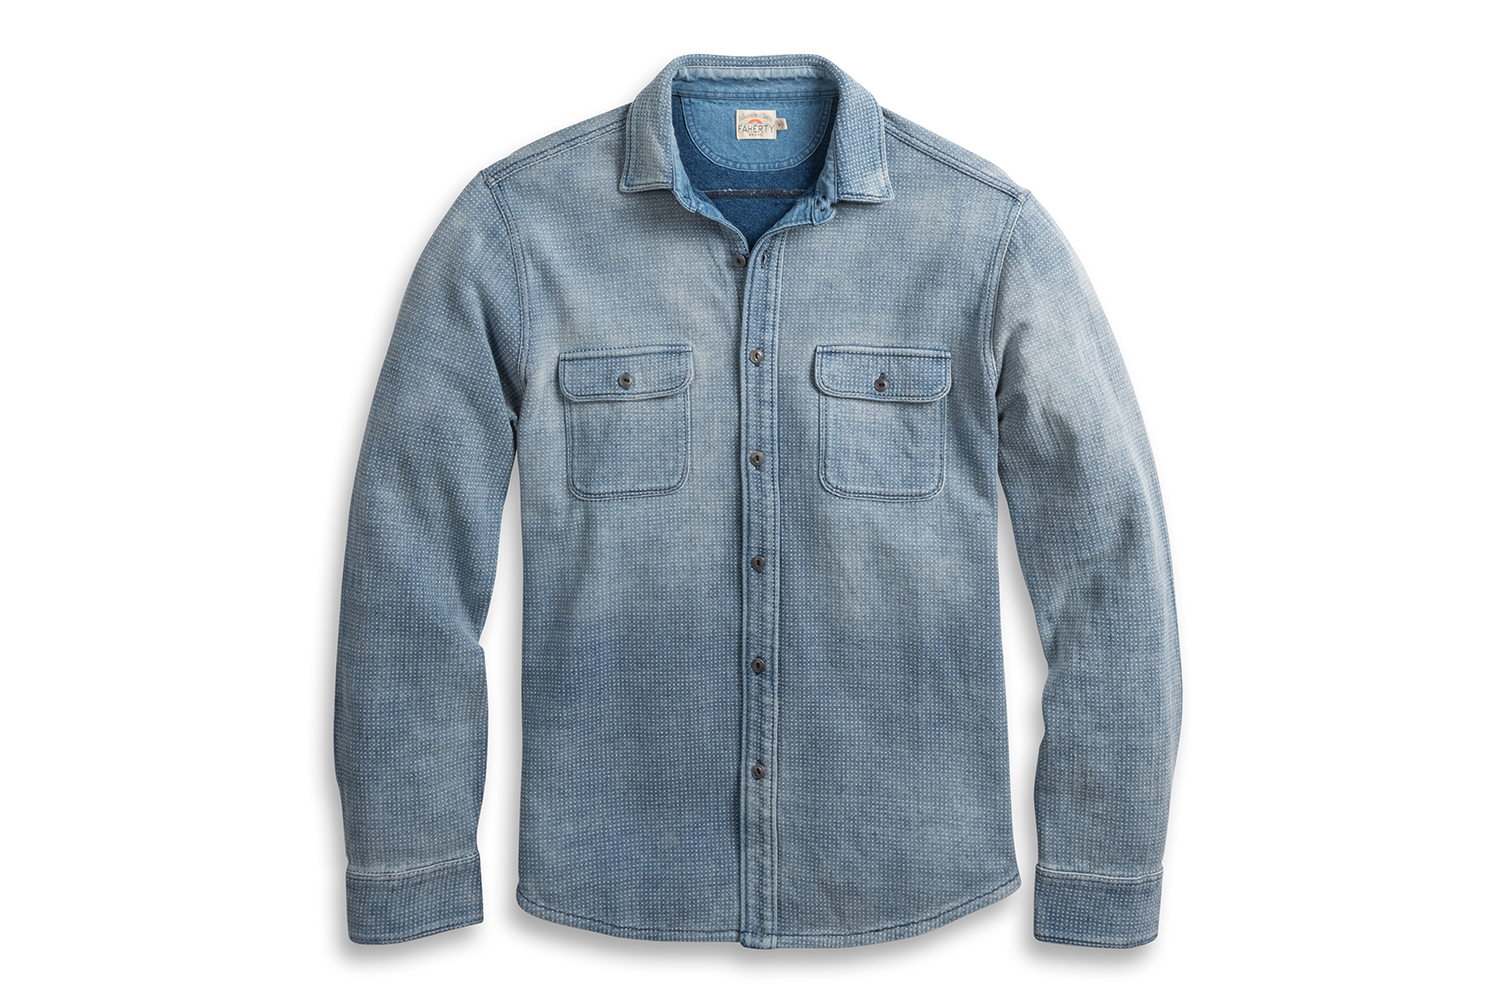 Faherty Brand Knit Dobby Workshirt Shirt Jacket